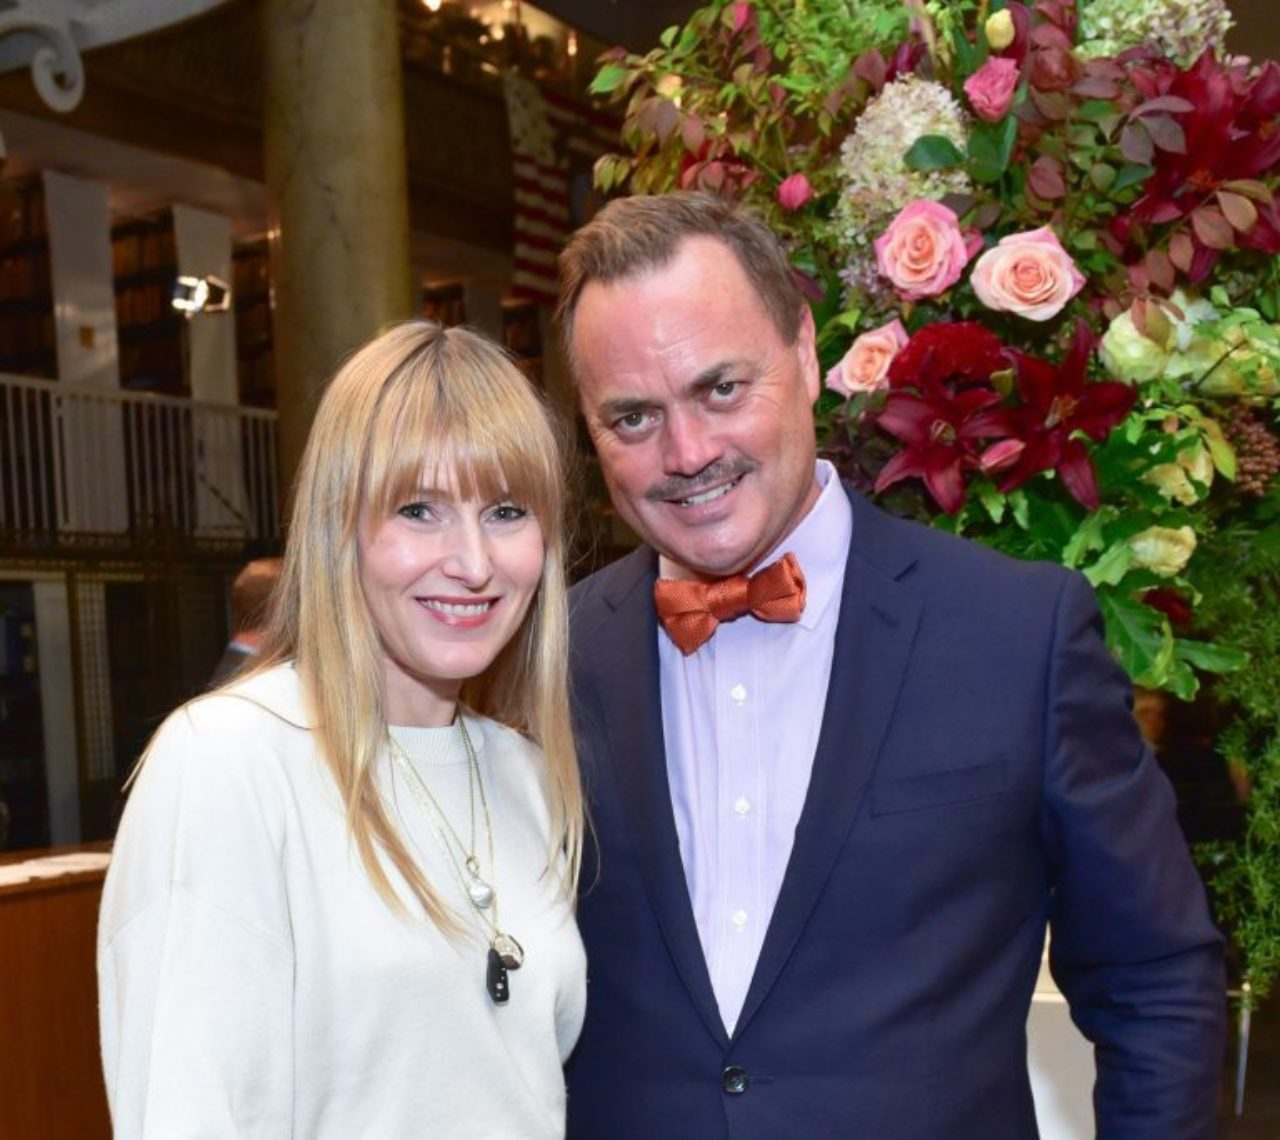 Architectural Digest Editor in Chief Amy Astley with ICAA President Peter Lyden